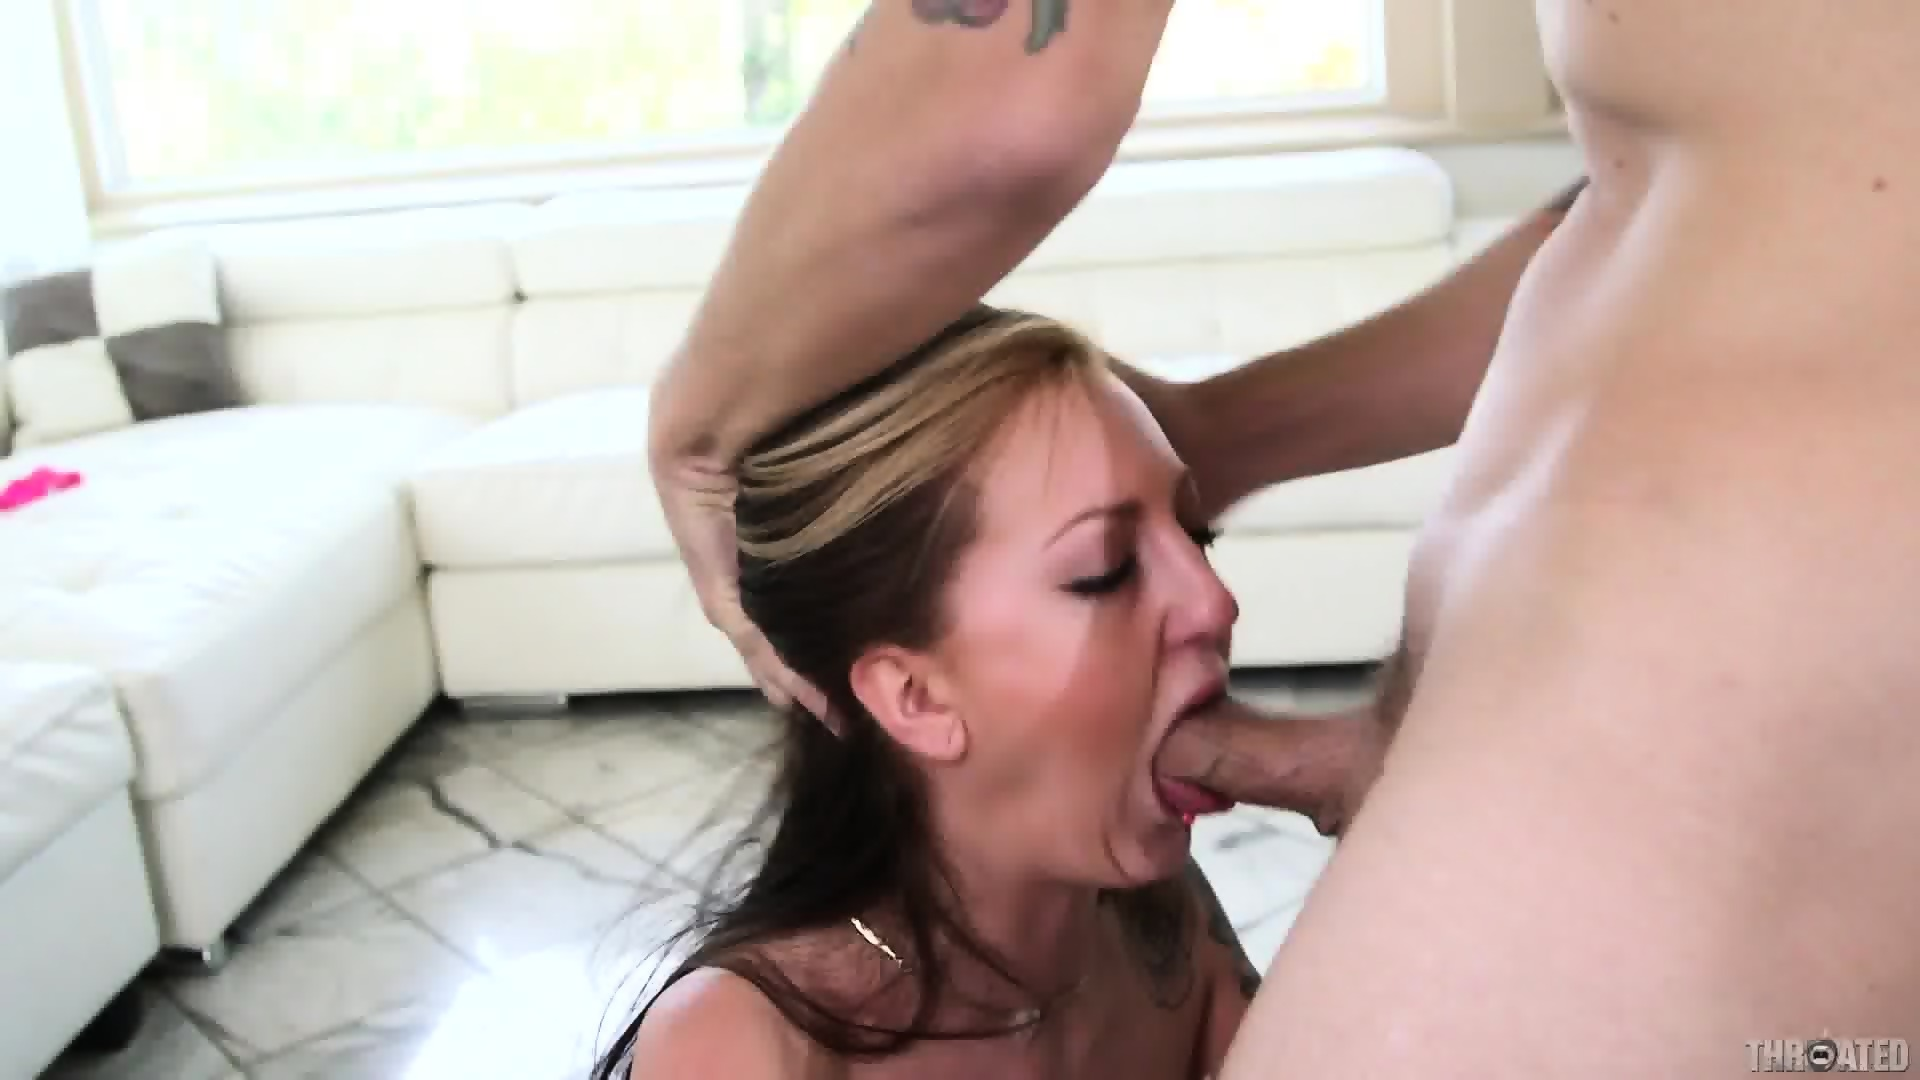 Kendra Cole Porn Pornstar Free Videos And Pictures